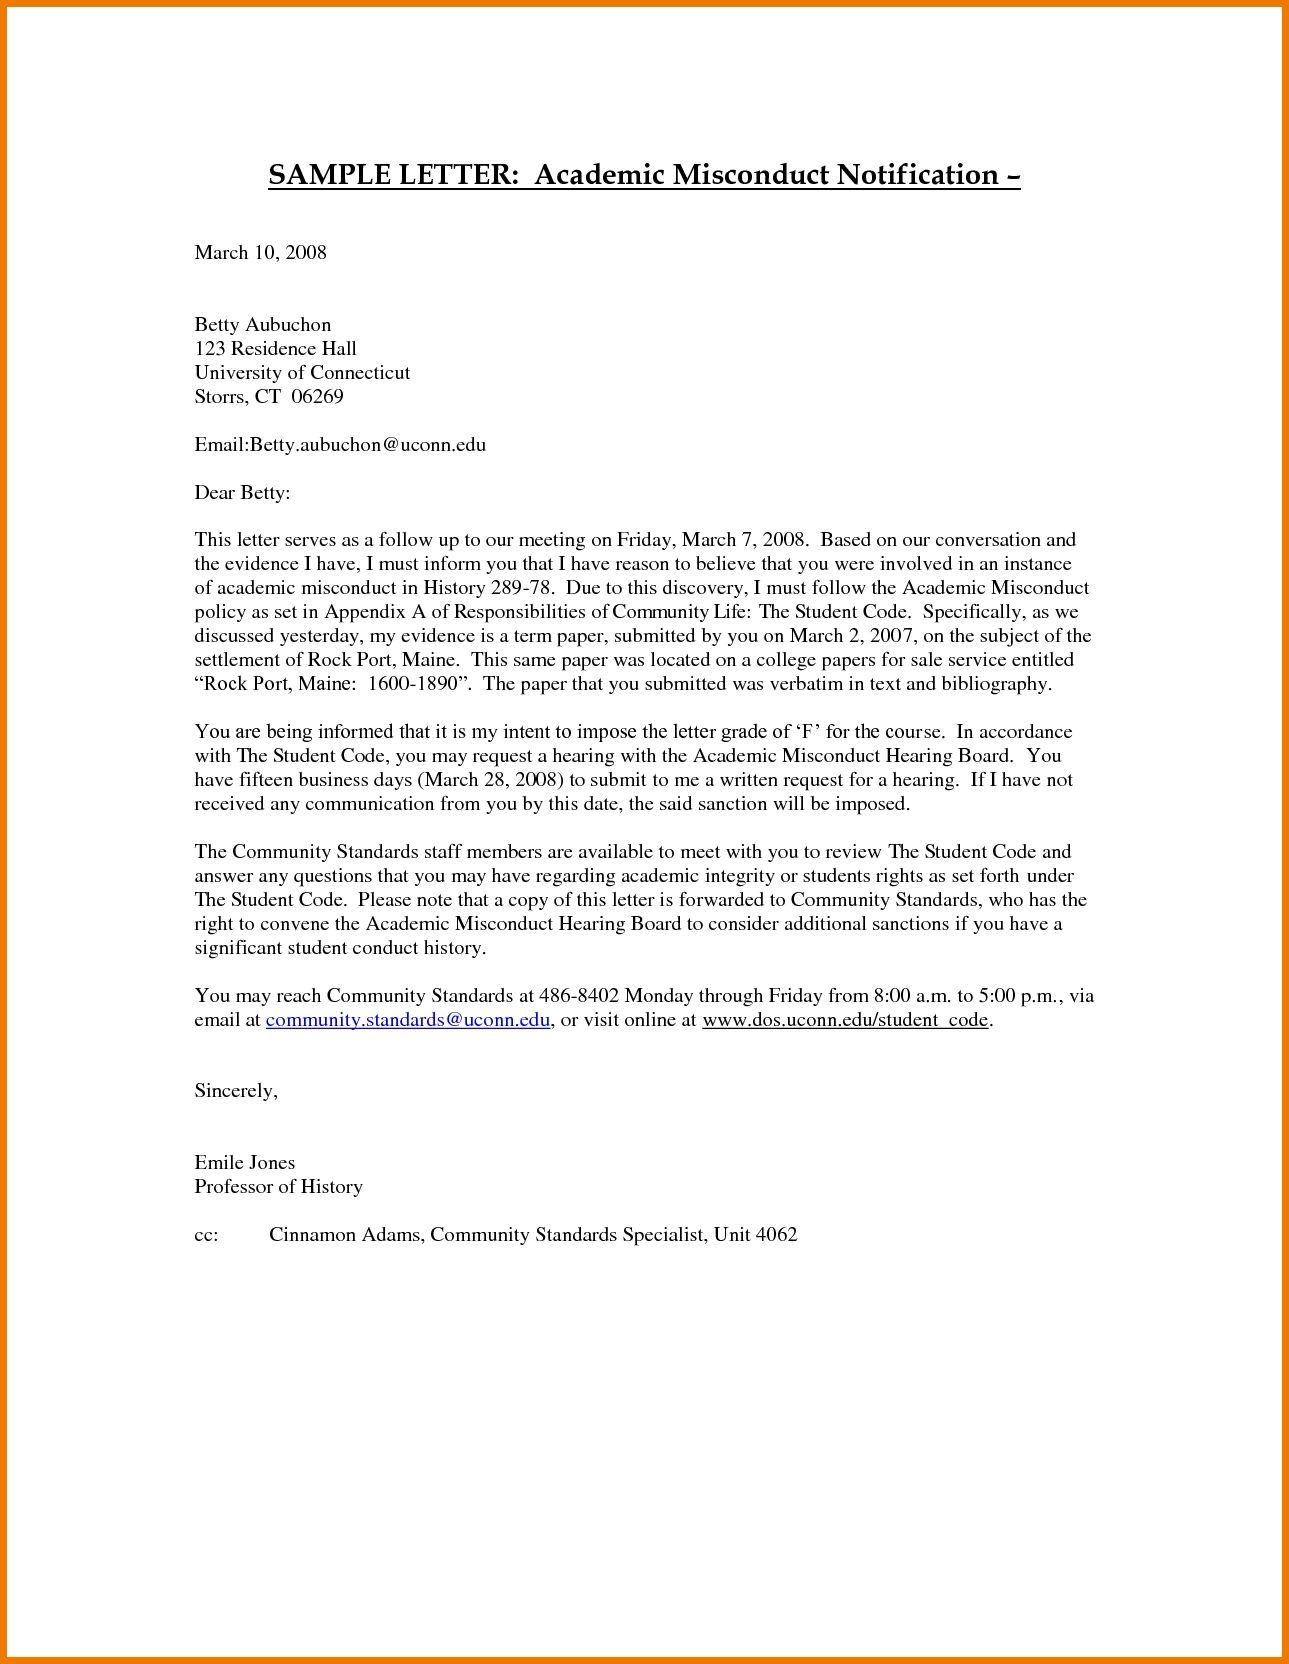 Expungement letter sample the student reference resume samples expungement letter sample the student reference resume samples examples with regard thecheapjerseys Gallery